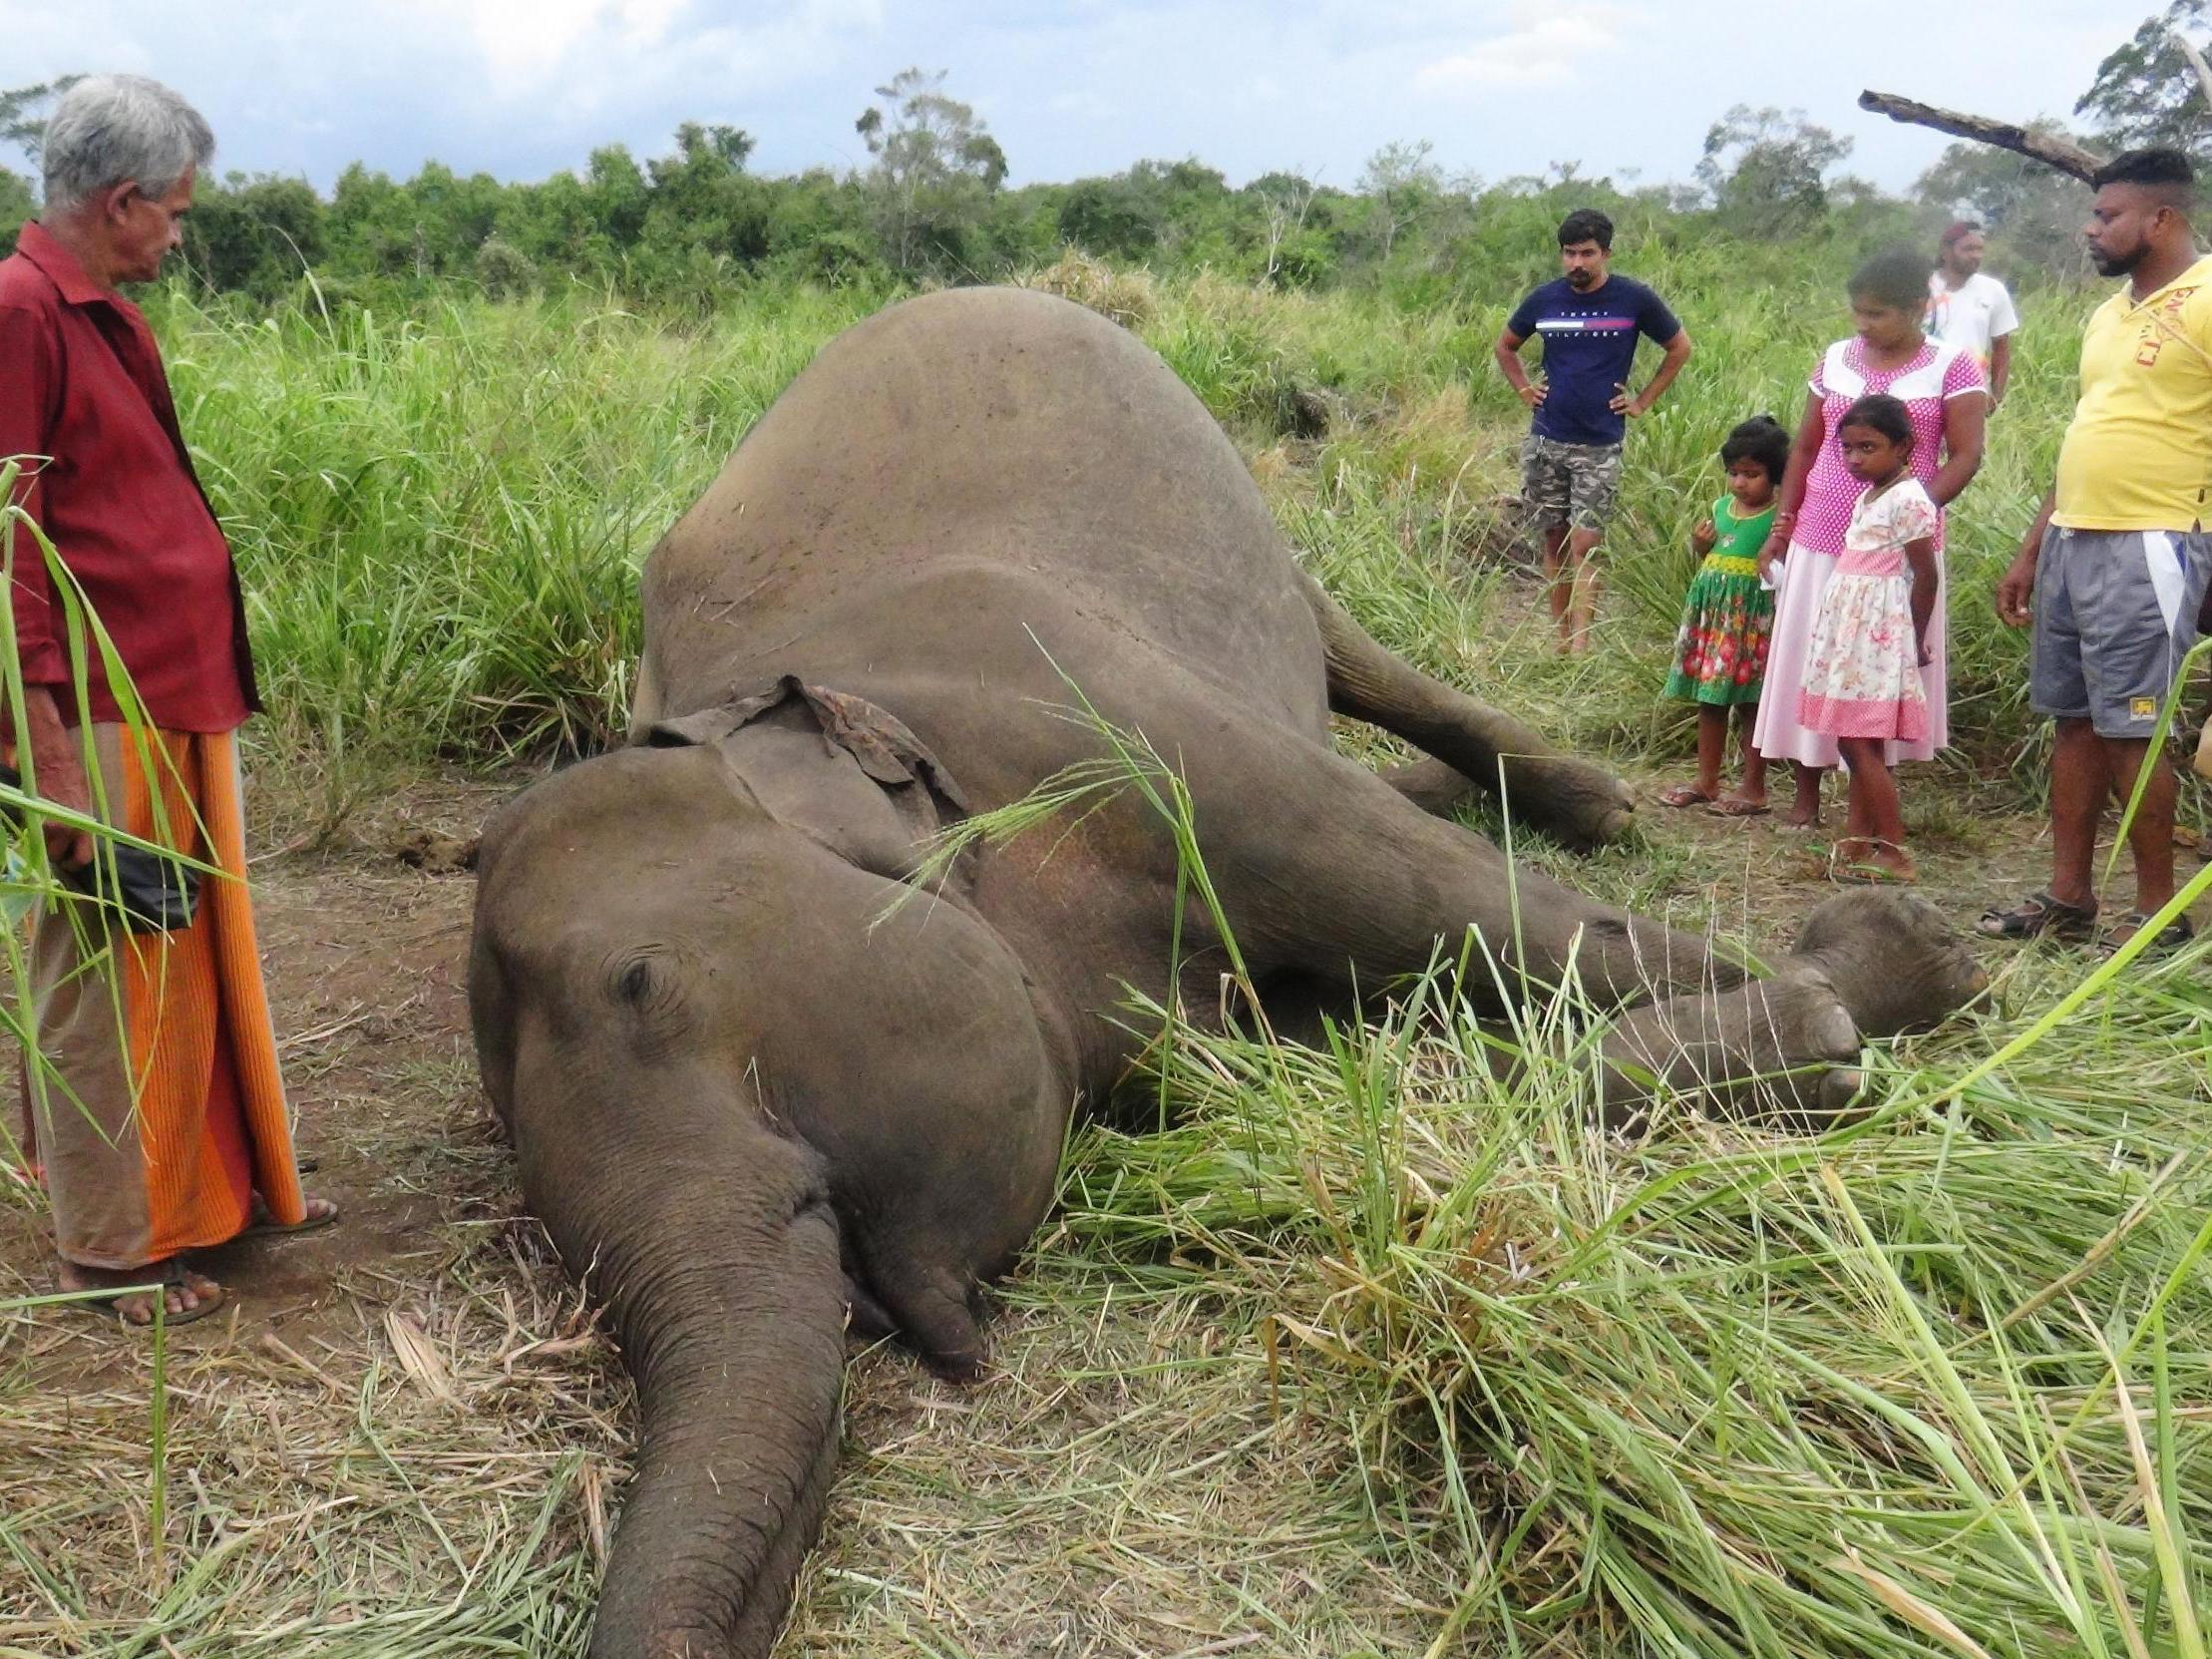 Poison and explosives used to kill elephants as record numbers die i…